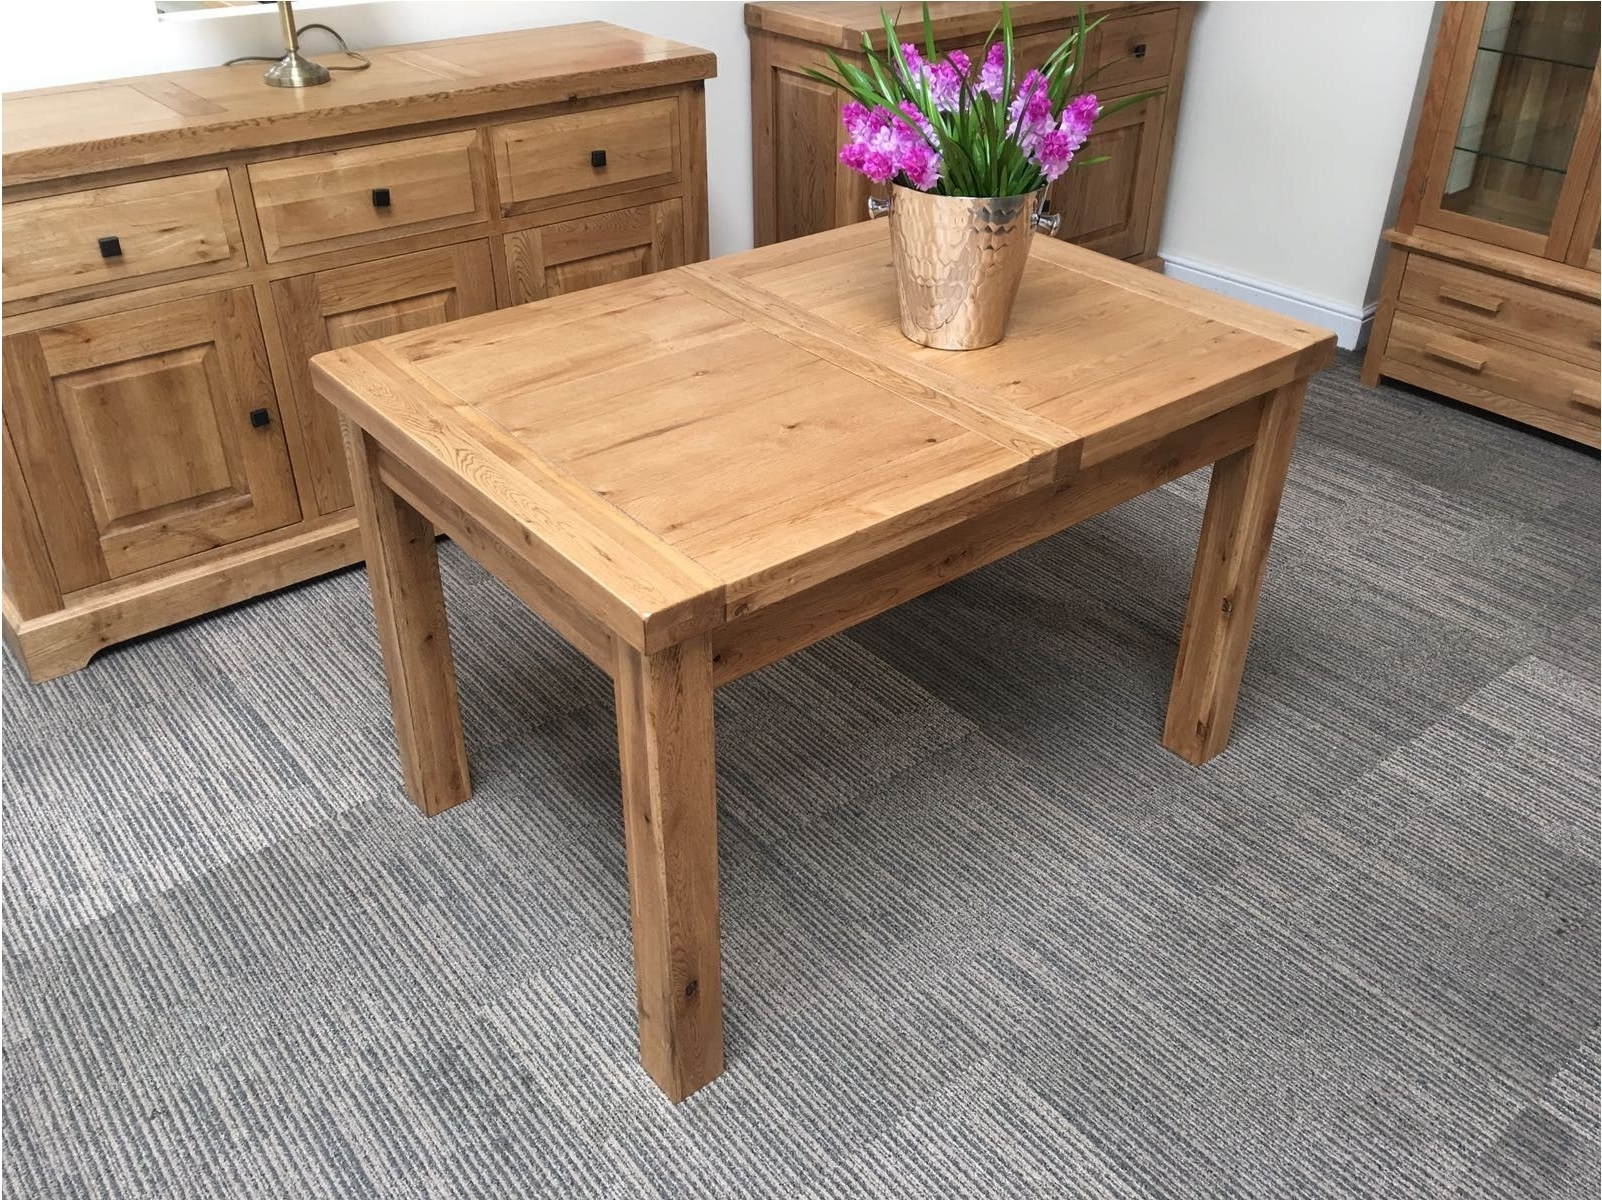 Oak Extending Dining Tables Sets Intended For Famous Nice Oxford Solid Oak Extending Dining Table Oak Furniture – Keller (View 11 of 25)